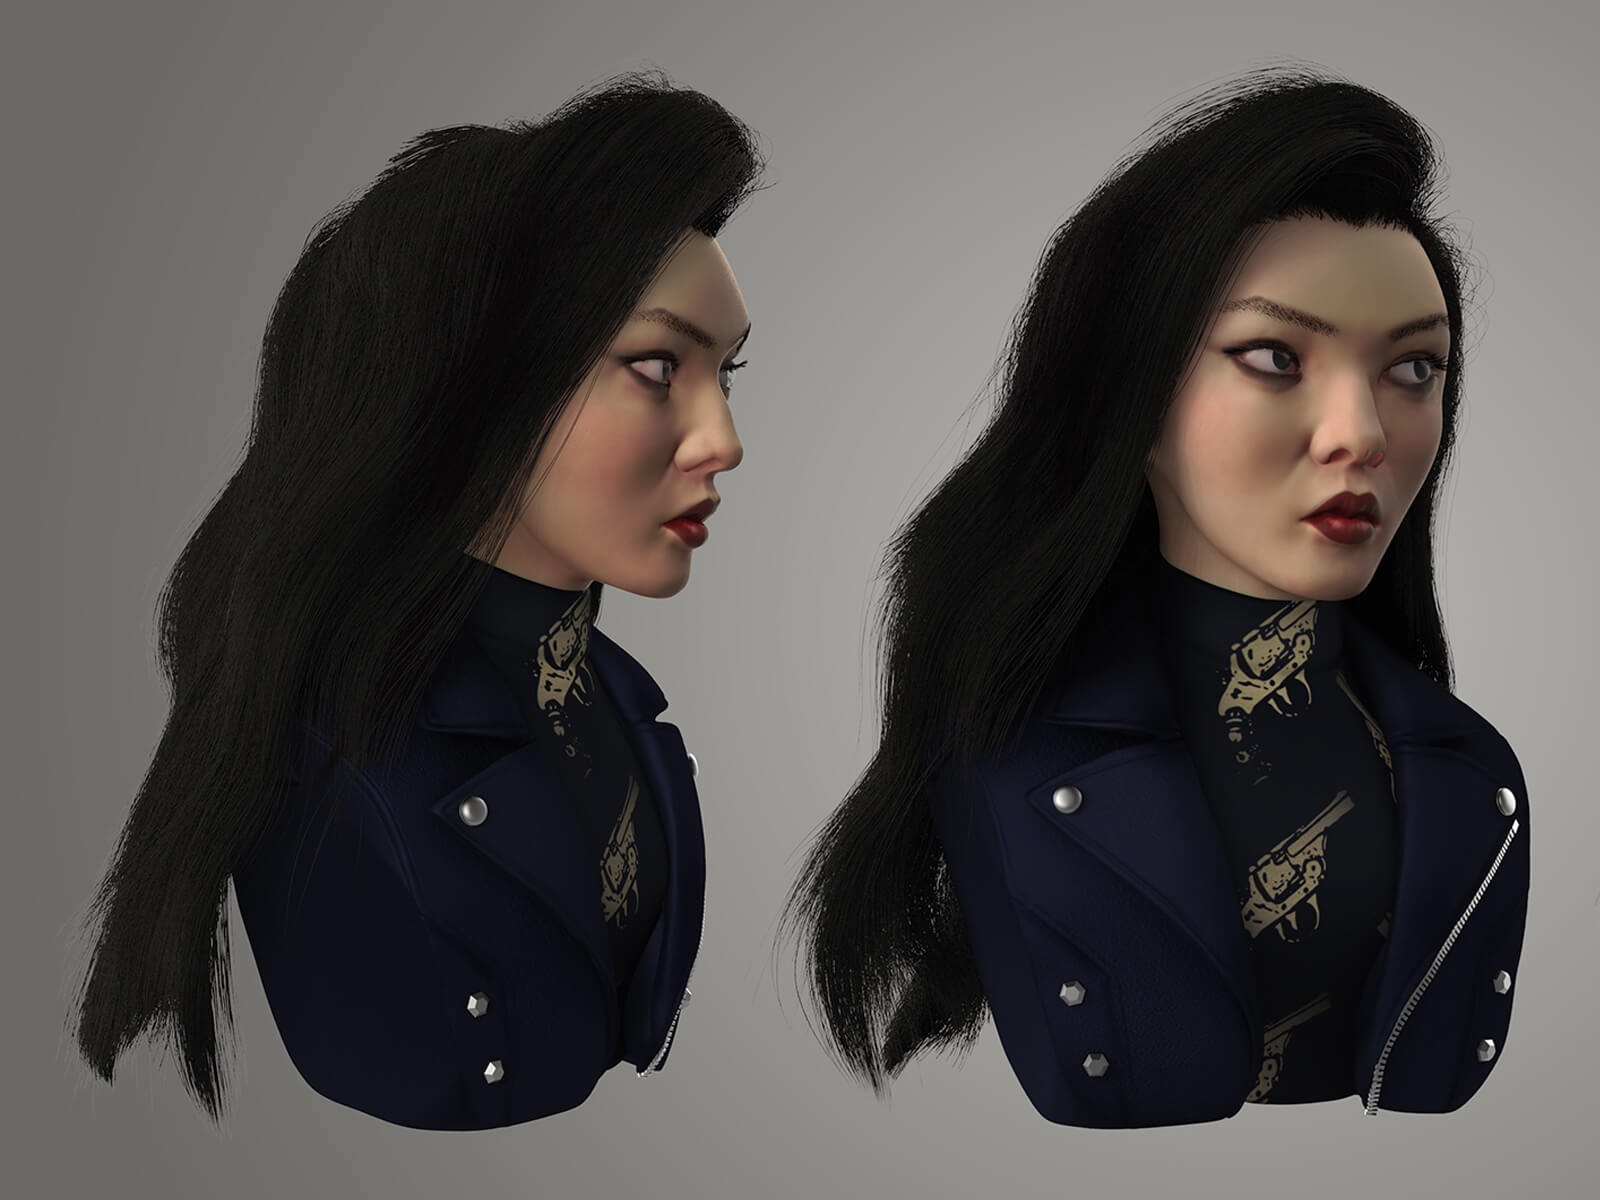 Multiple angles of a dark-haired woman wearing a turtleneck and jacket